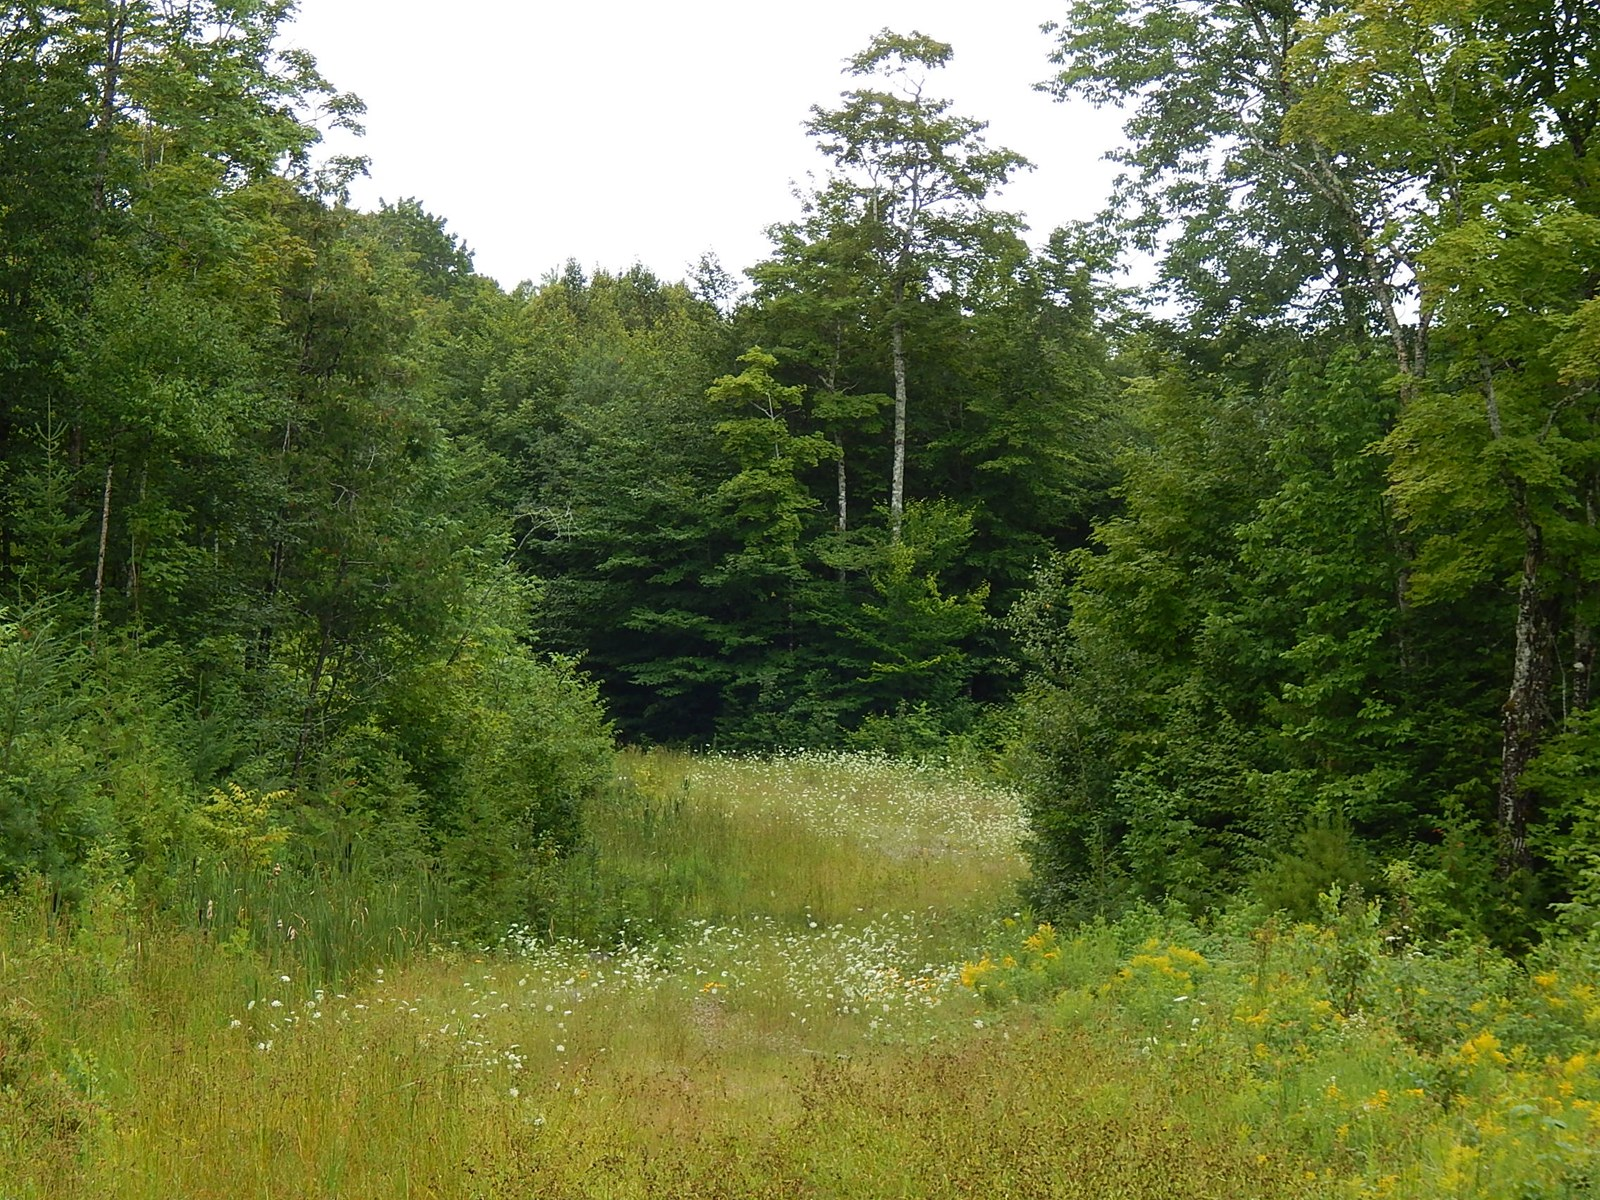 Recreational Land For Sale | Springfield, Maine